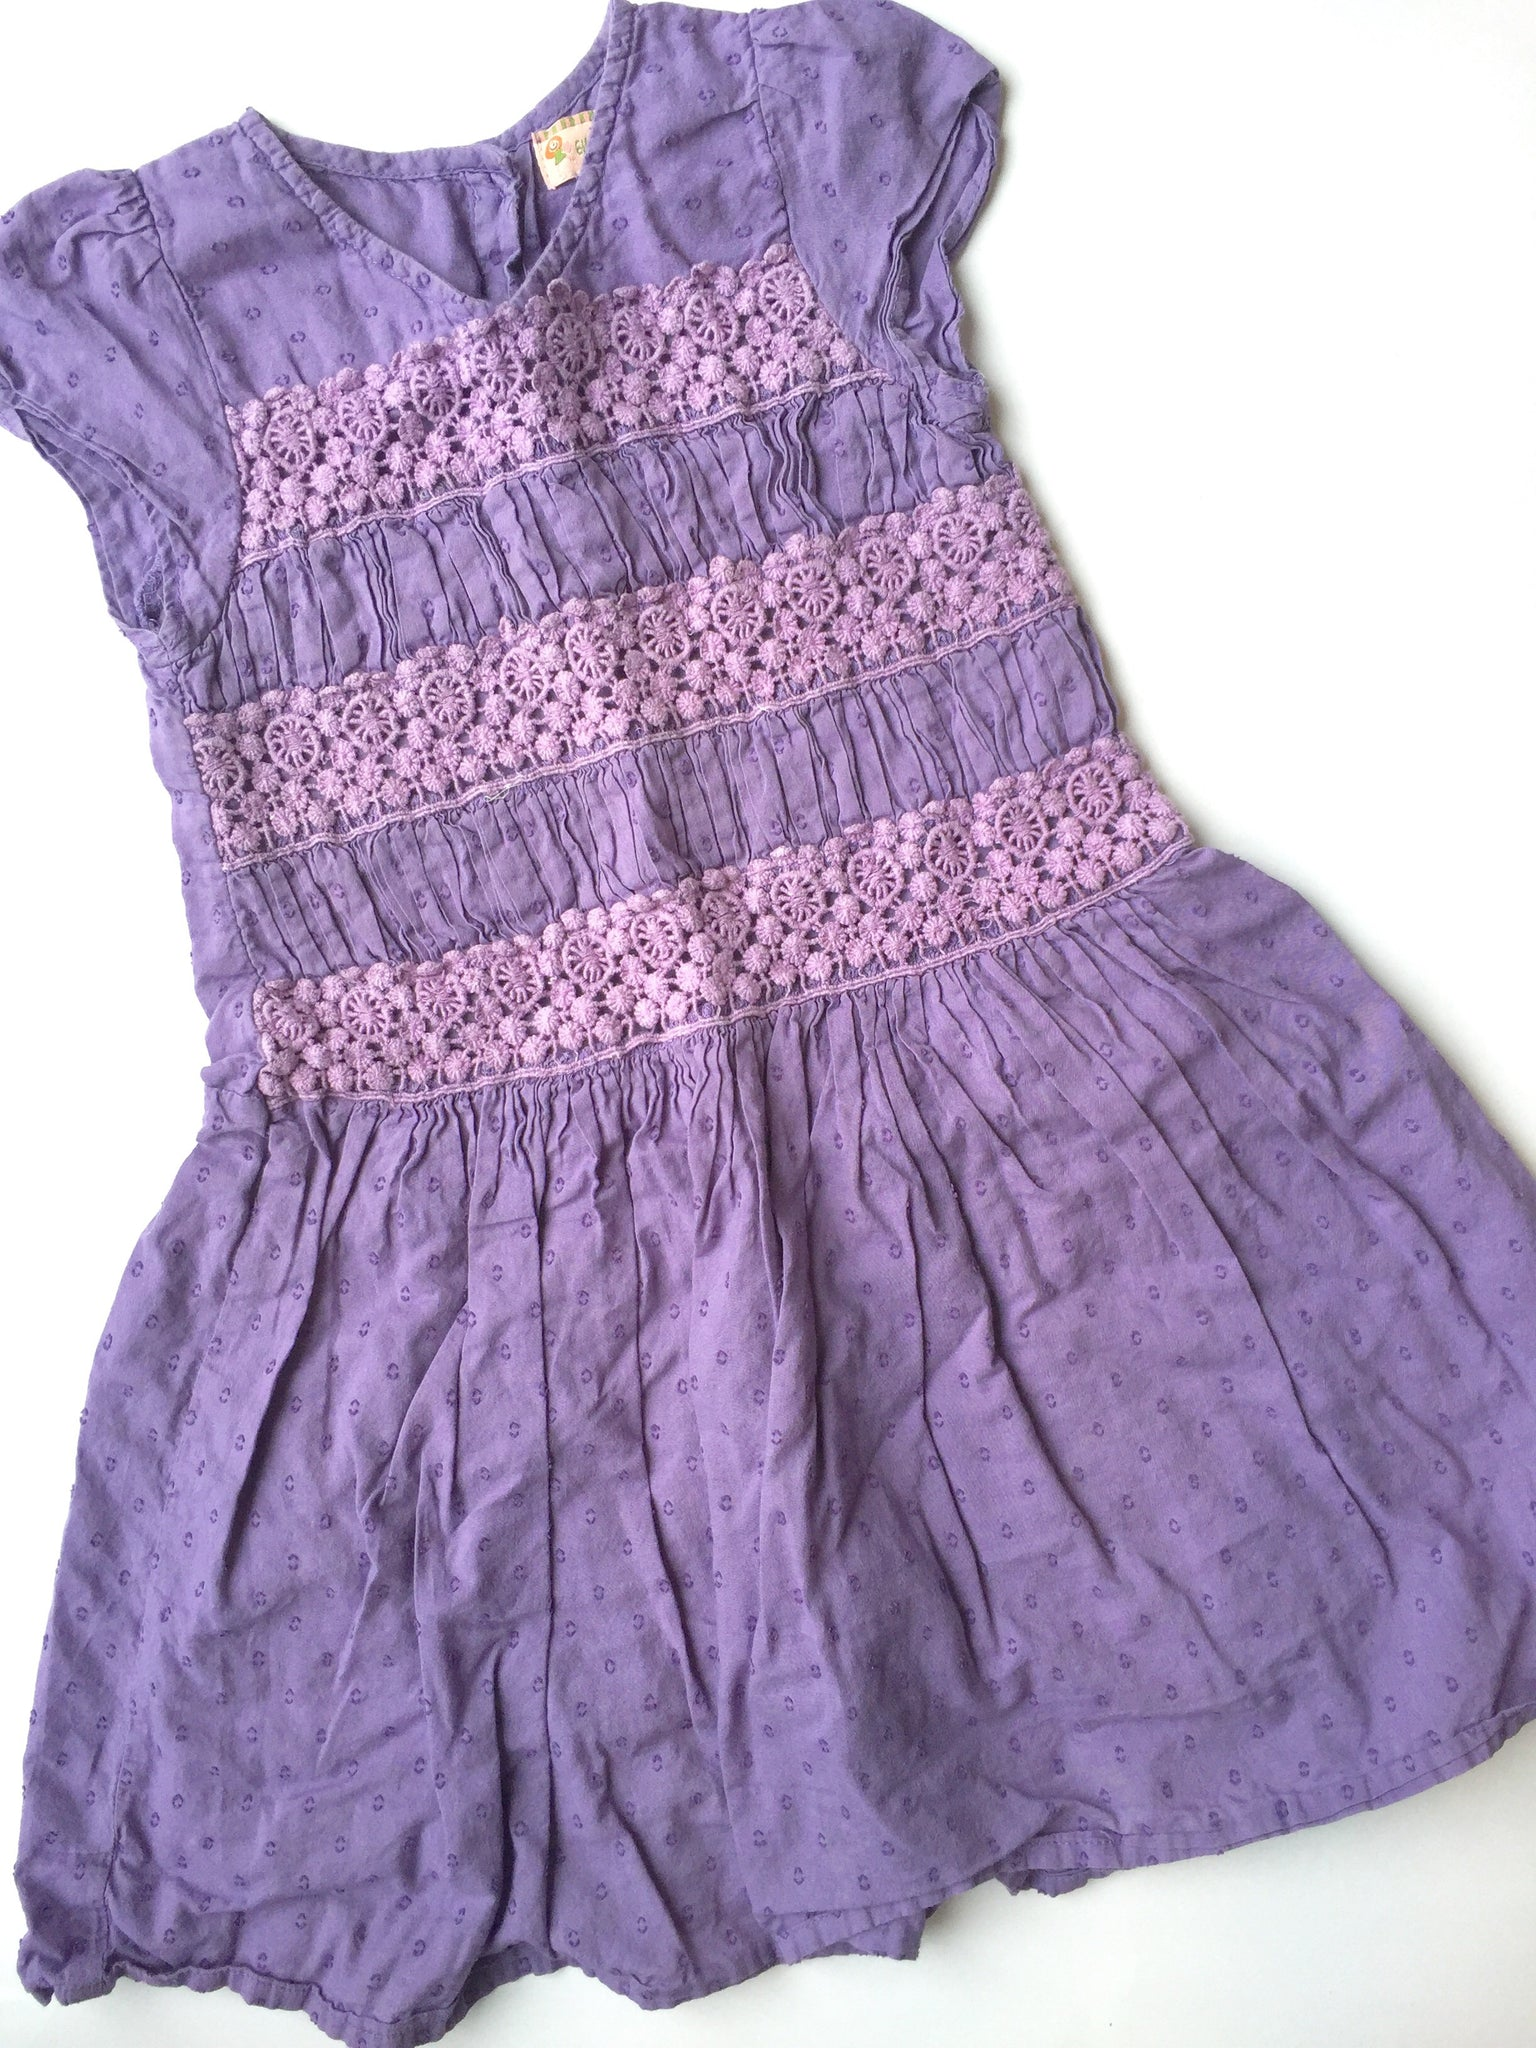 Gillian's Closet Dress | 3-4T